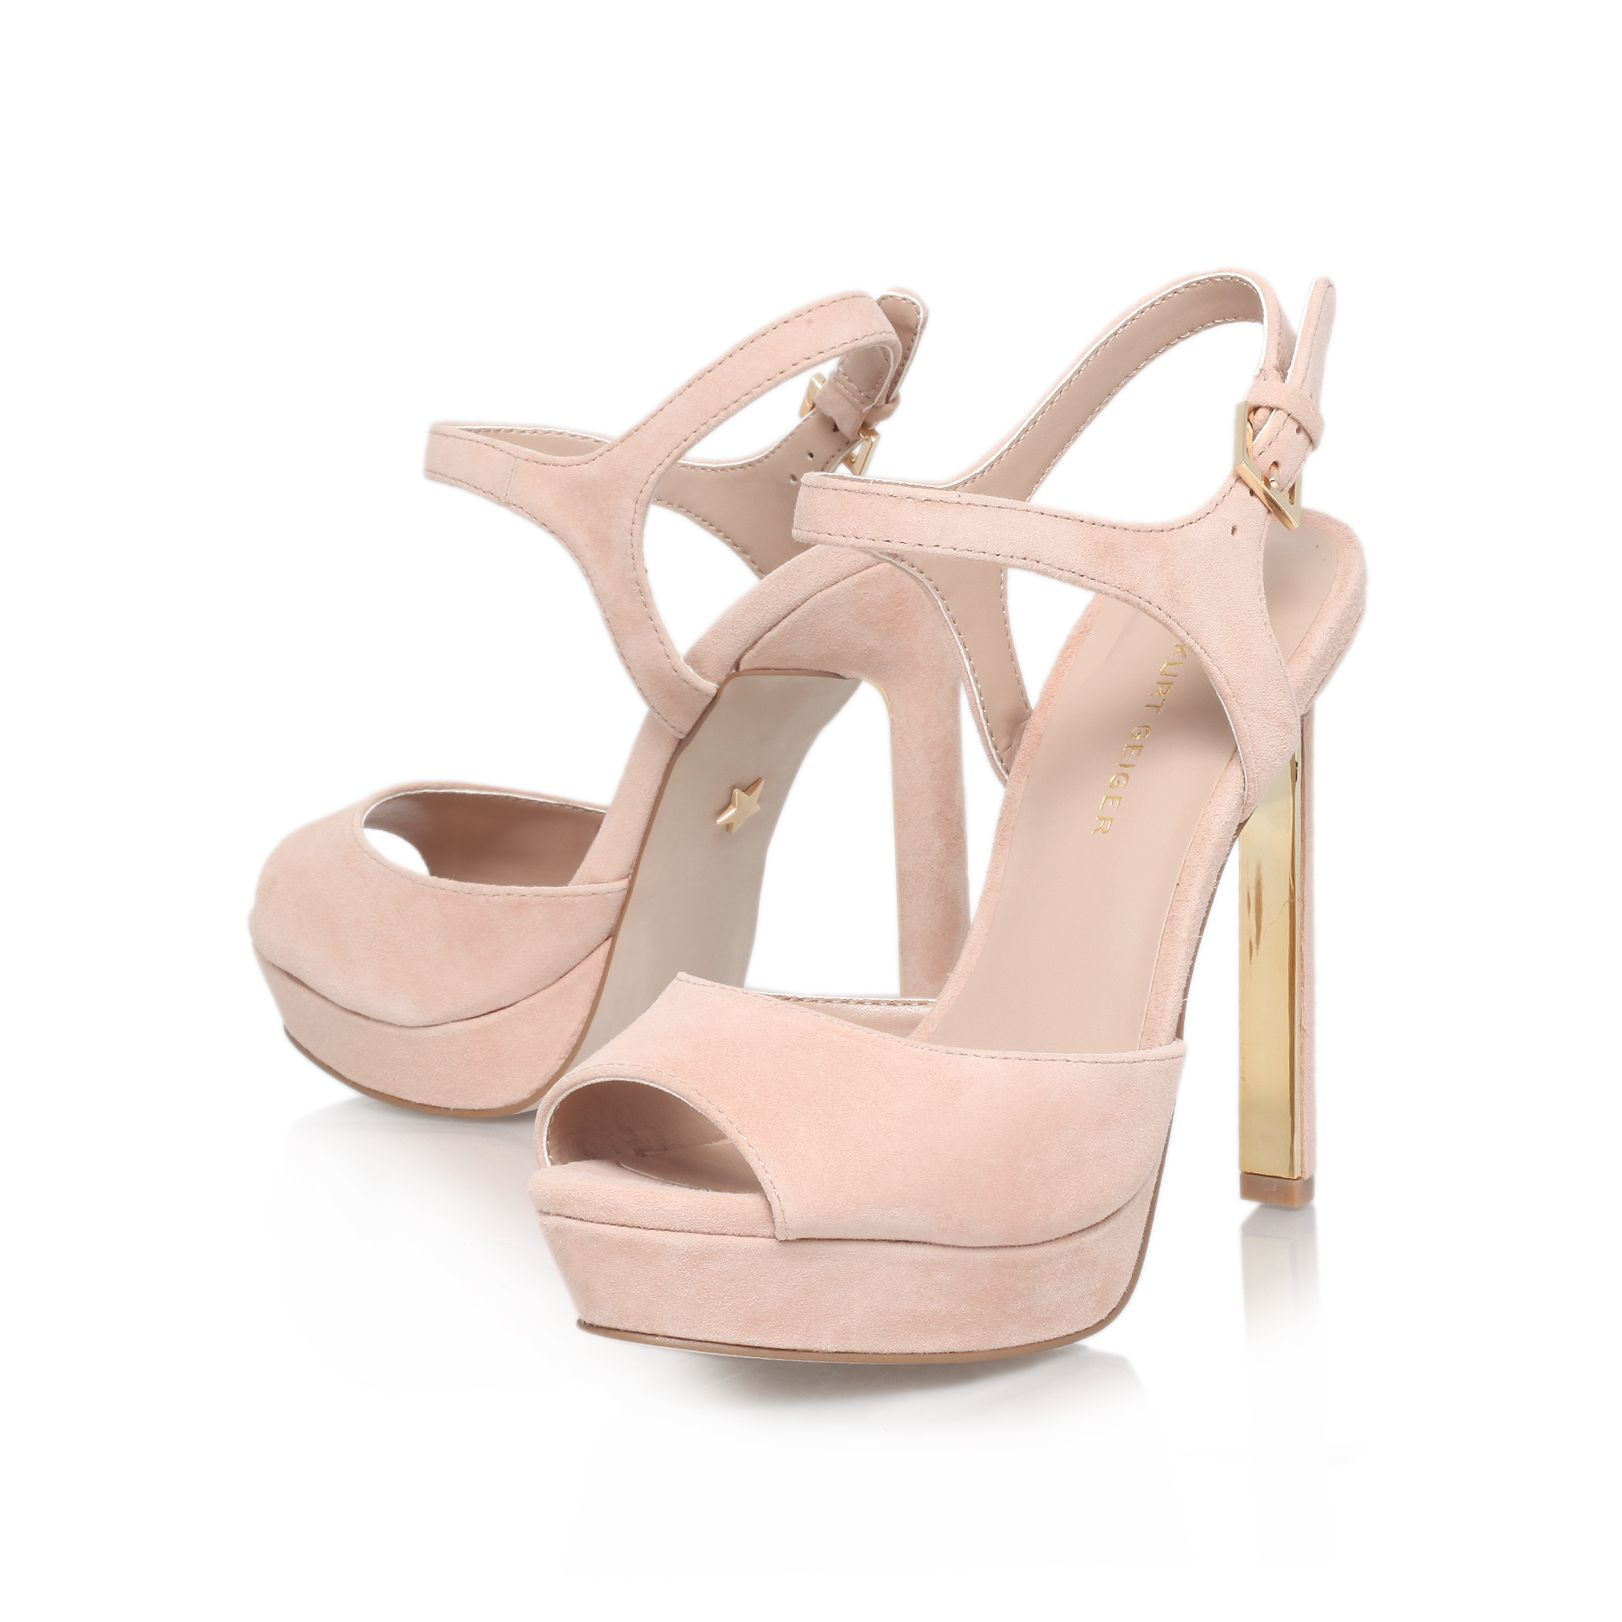 Hazel high heel sandals